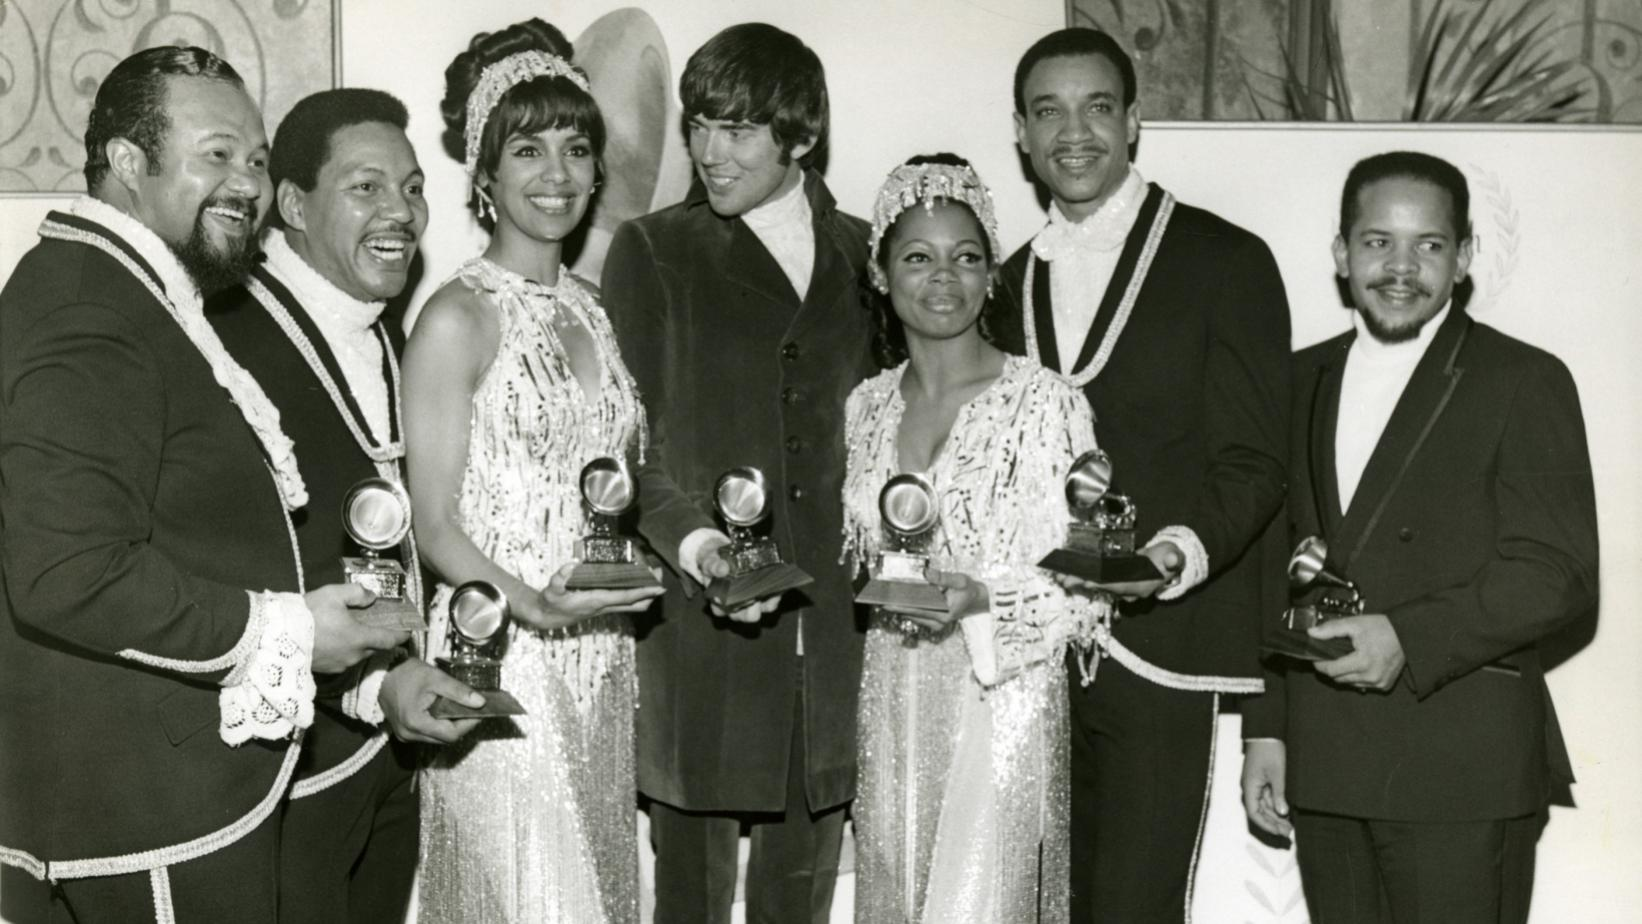 5th Dimension and Jimmy Webb